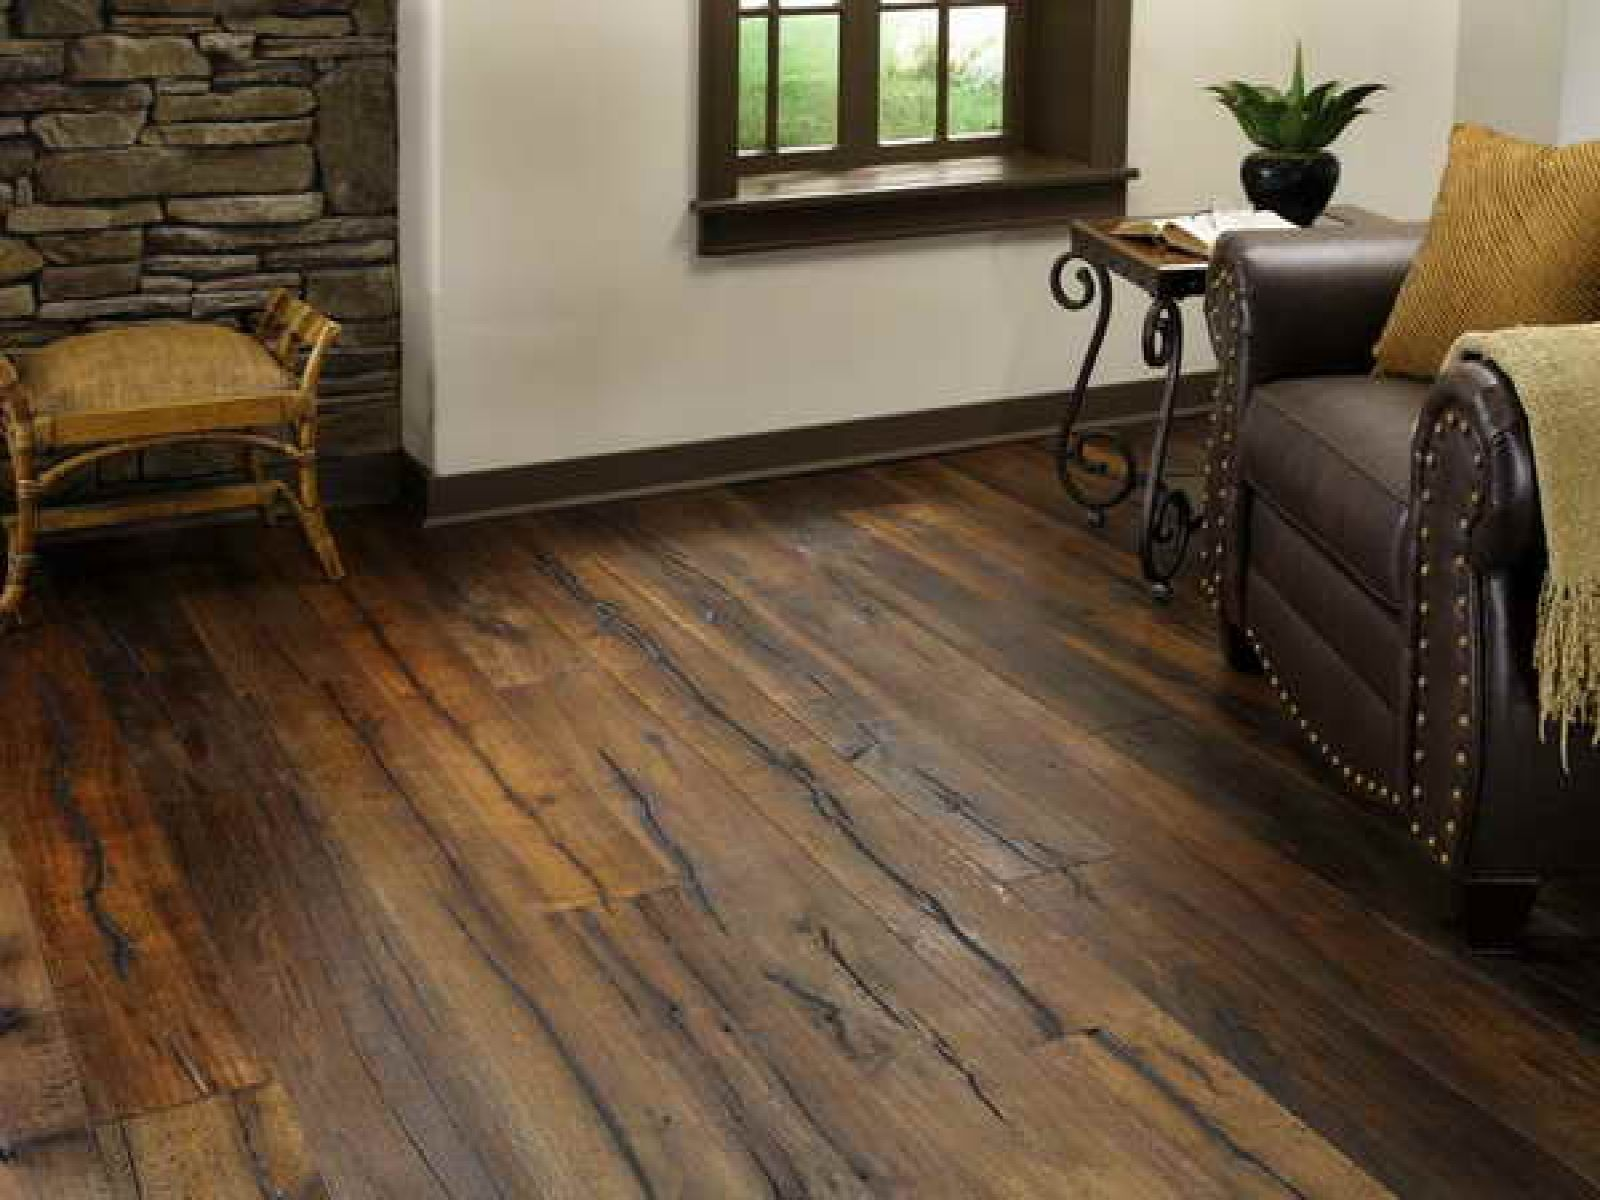 40 awesome cork floor basement images home ideas pinterest 40 awesome cork floor basement images dailygadgetfo Choice Image